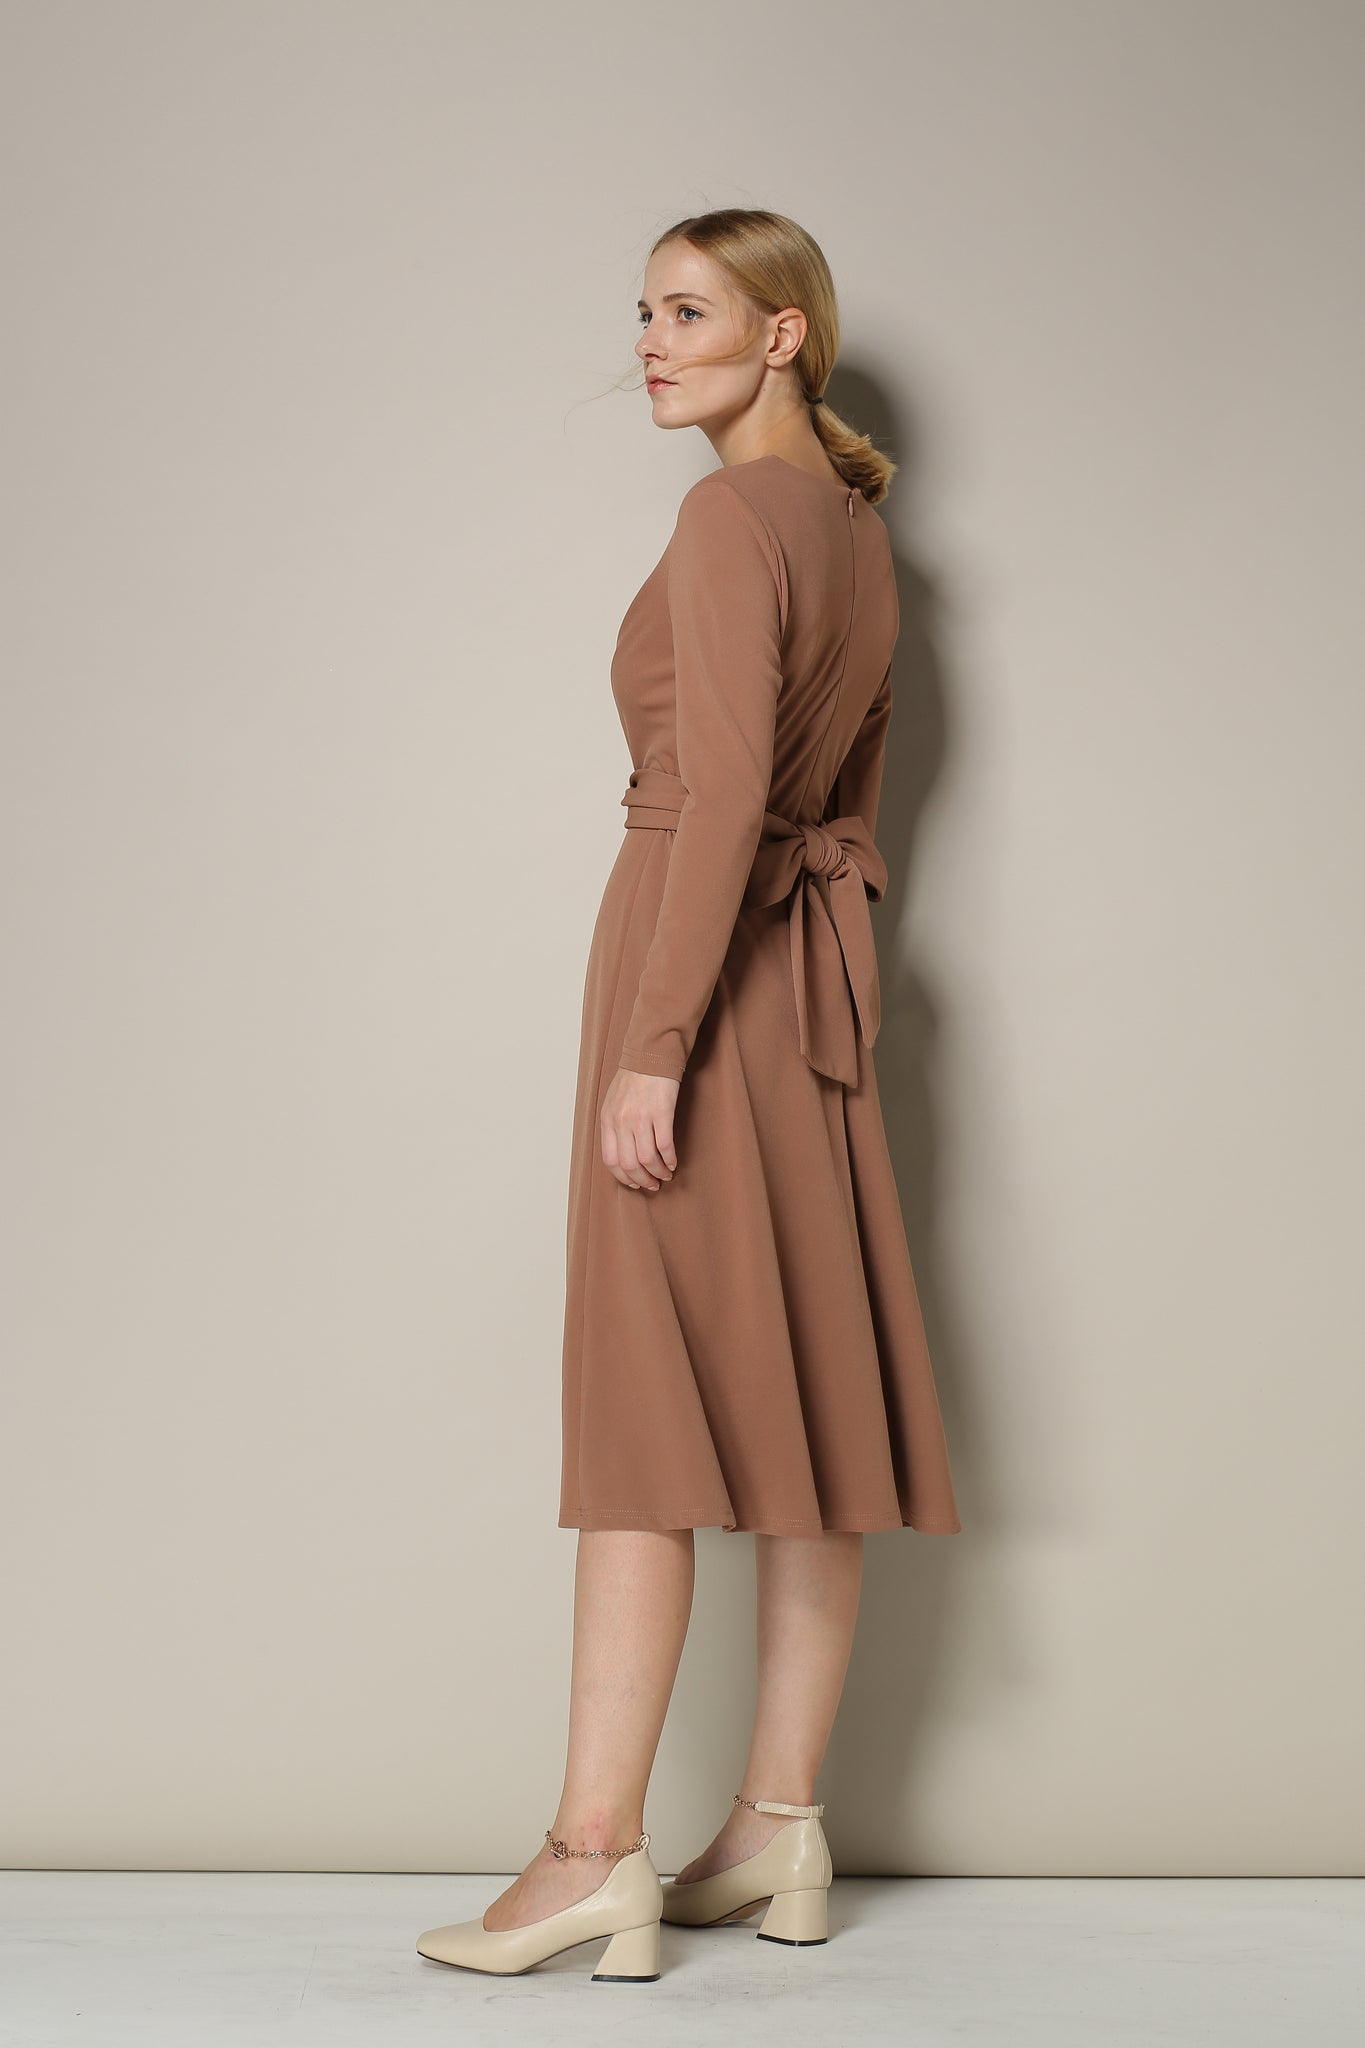 Long-Sleeved Rose Beige Midi Dress